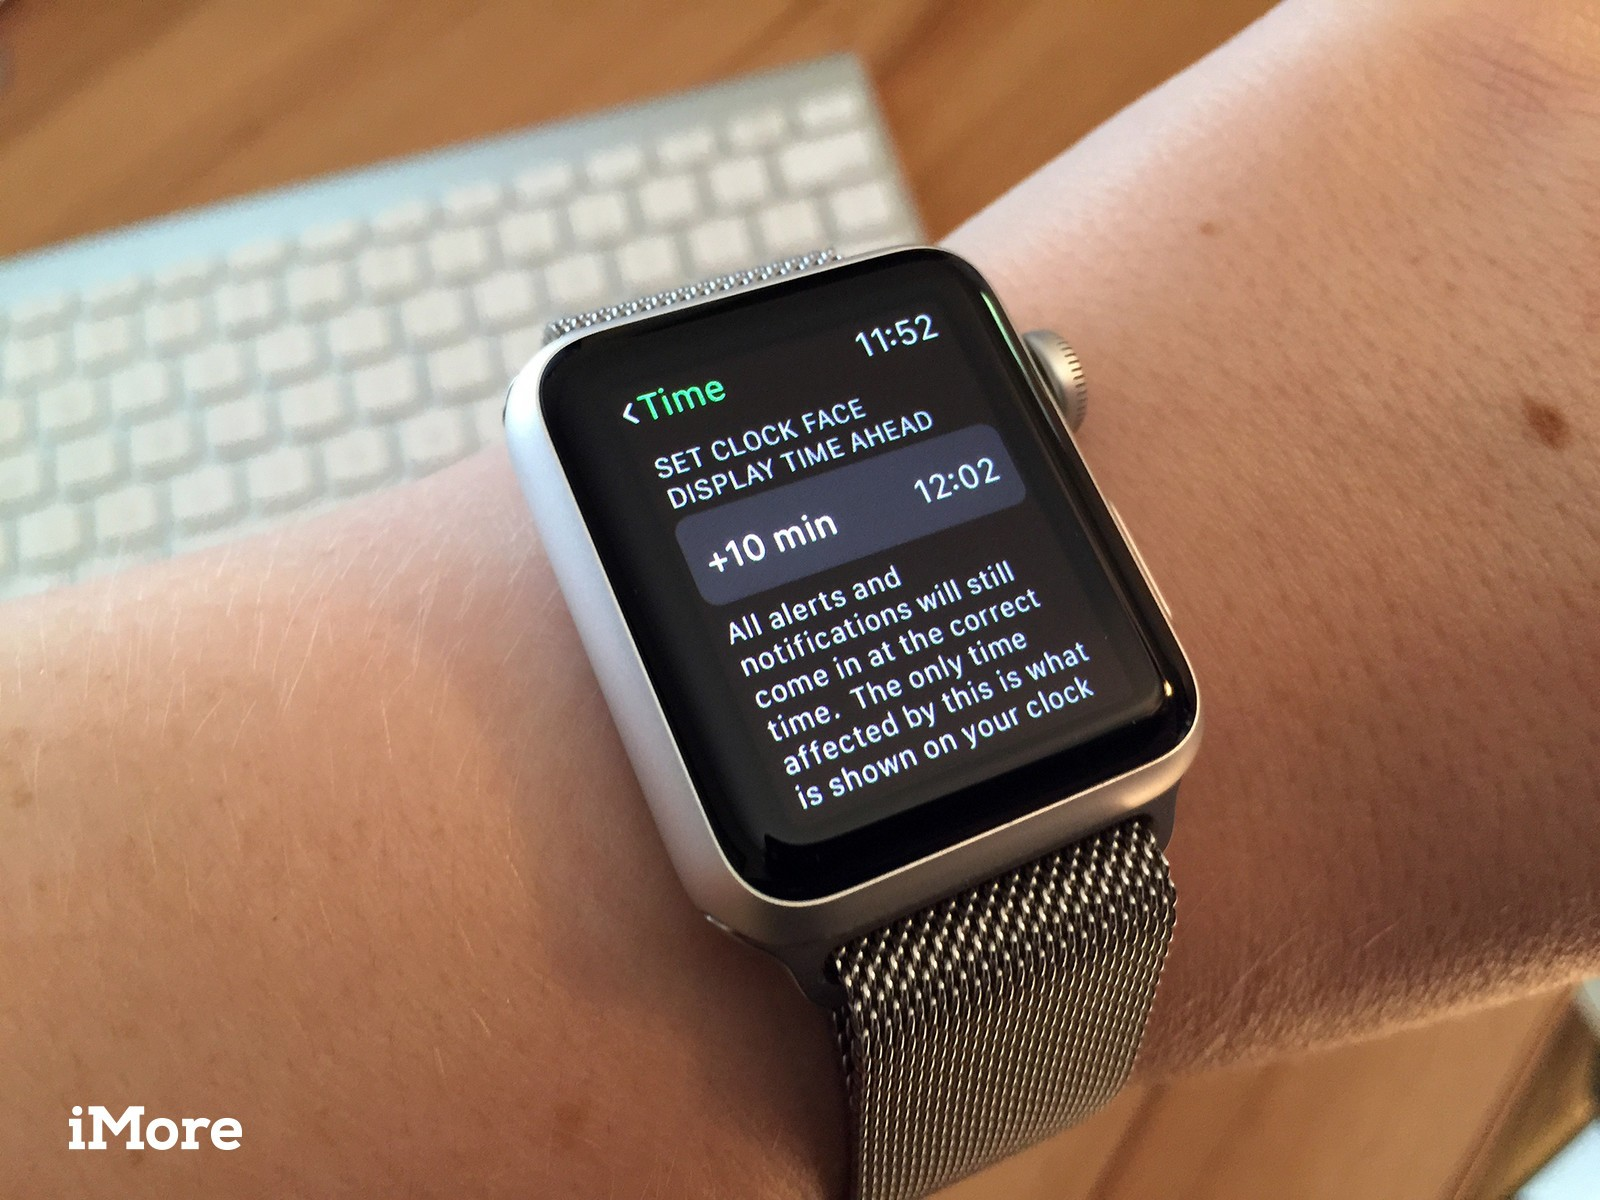 How to set the clock ahead on Apple Watch